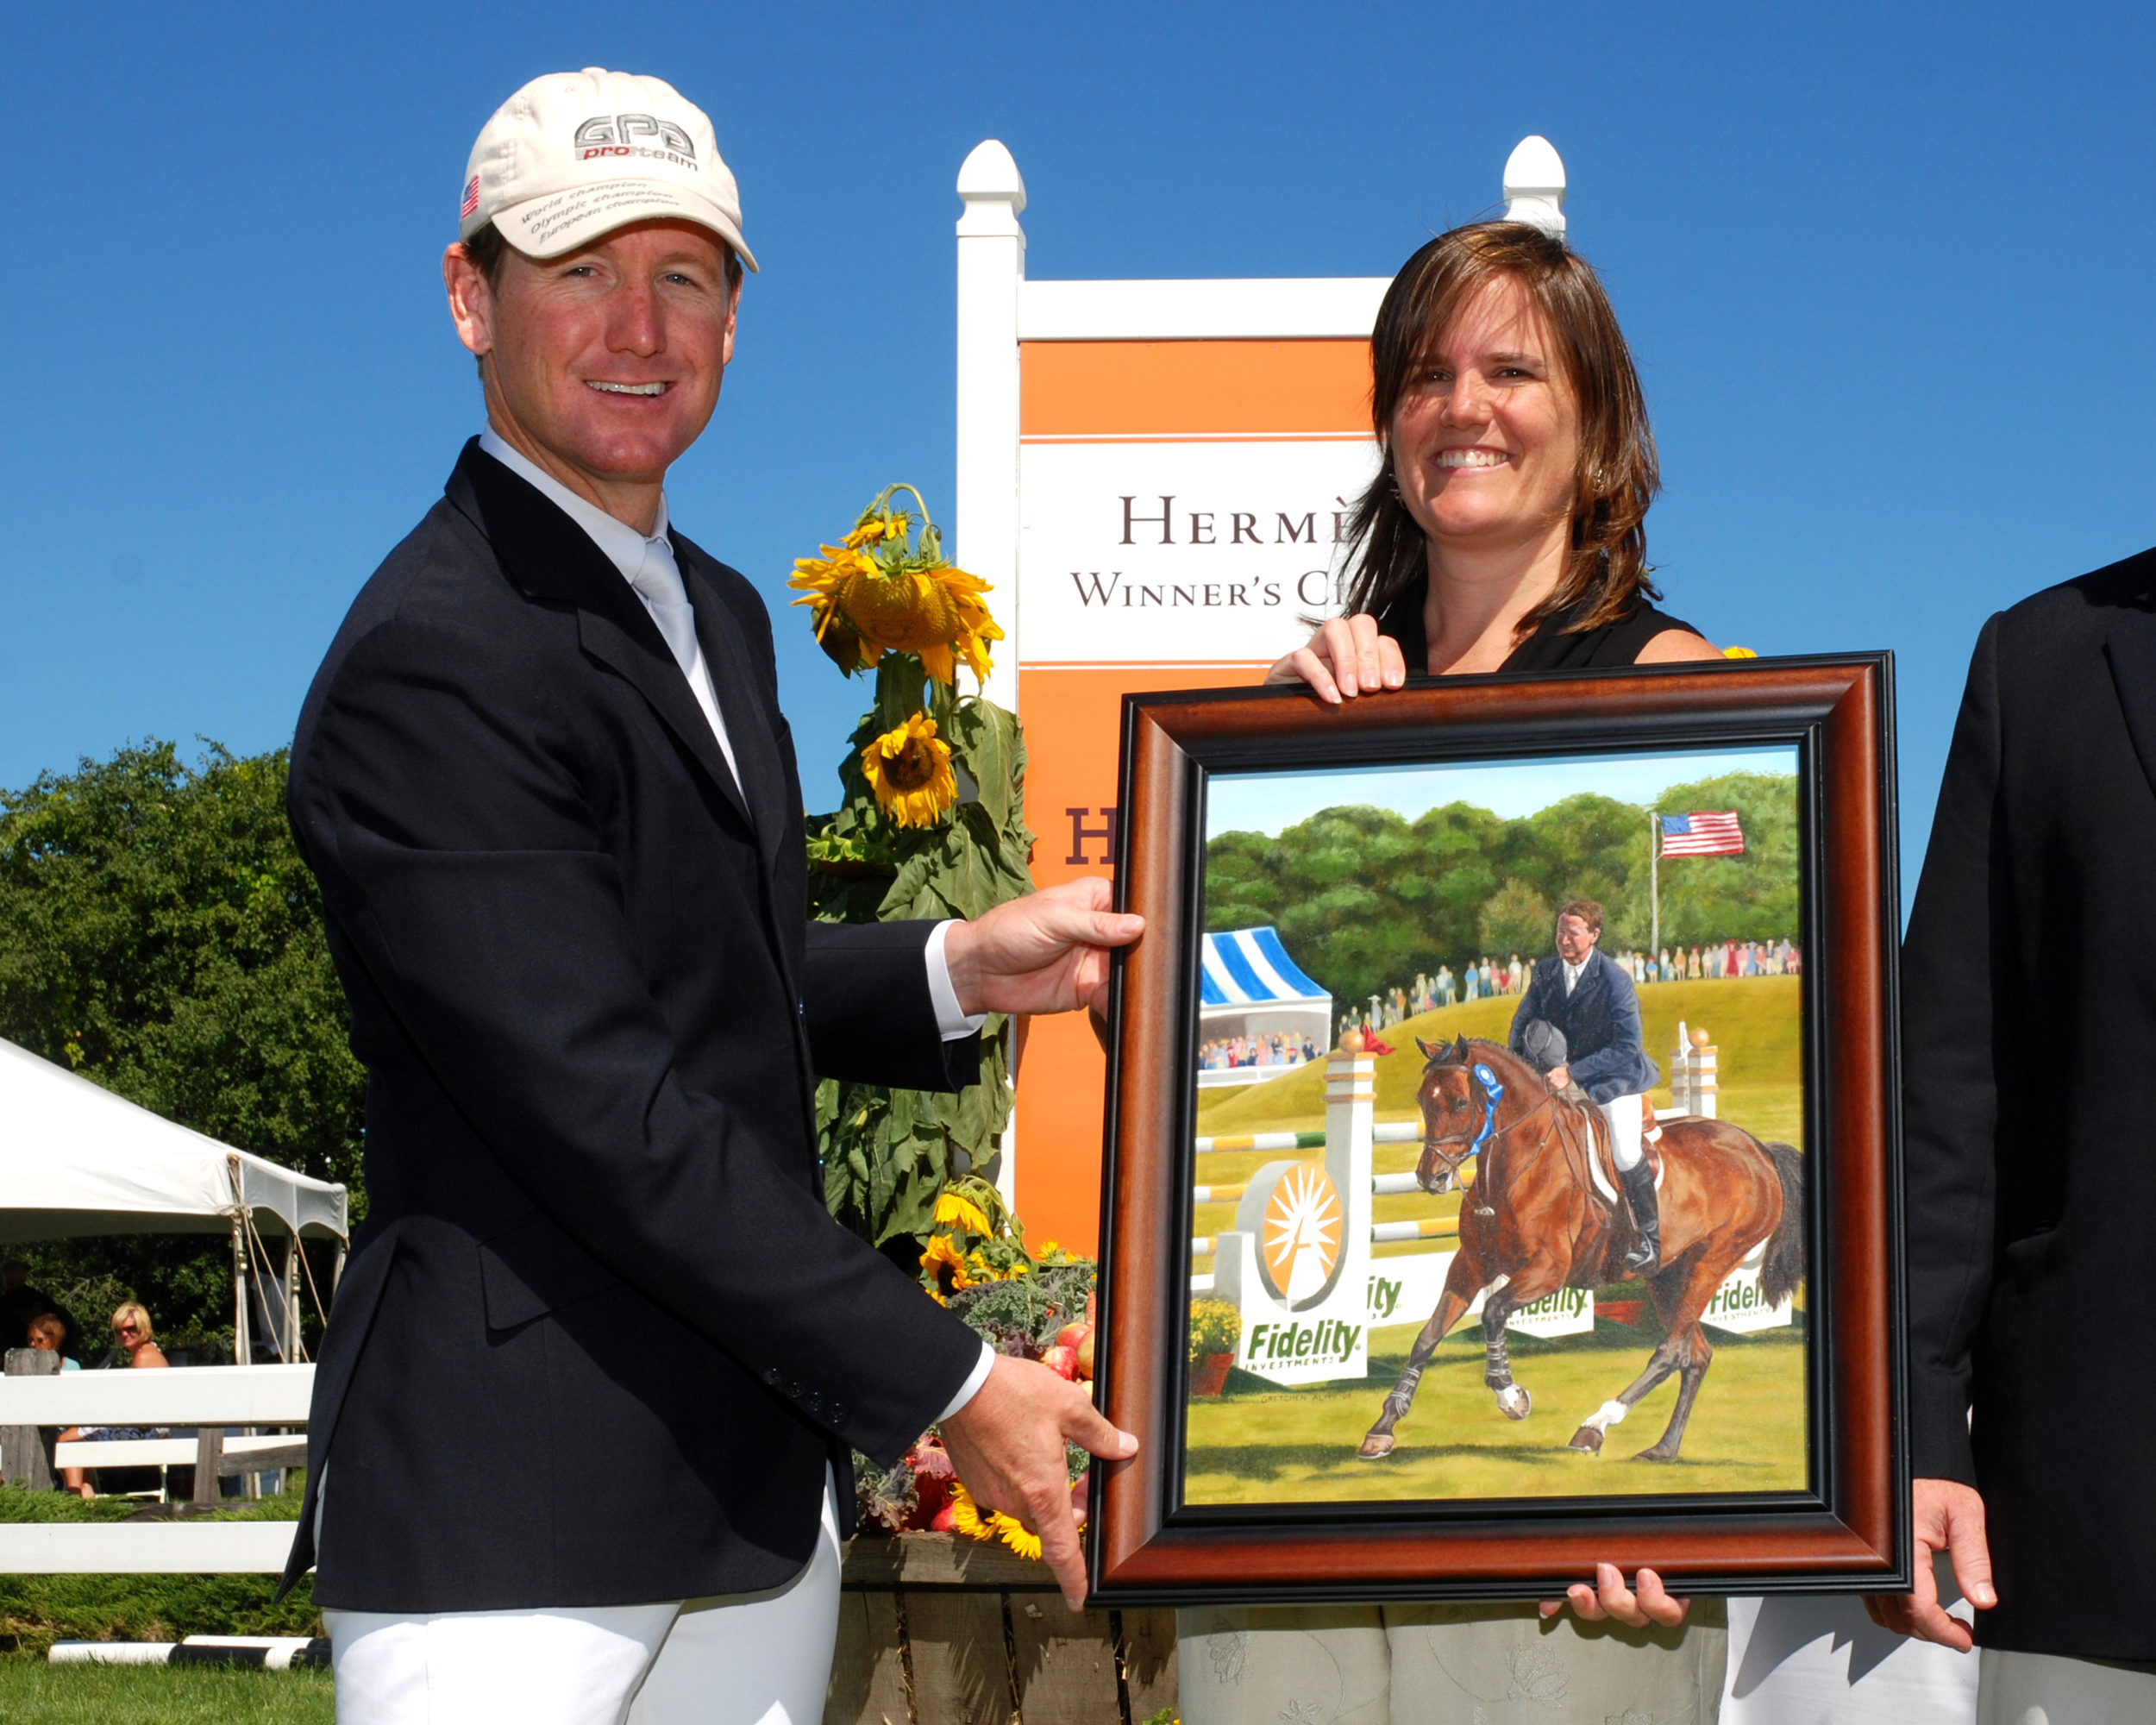 Gretchen presenting Gold Medalist Mclain Ward the painting she did of him on Goldika for the Fidelity Investments Jumper Classic, Hampton Falls, NH 2010.